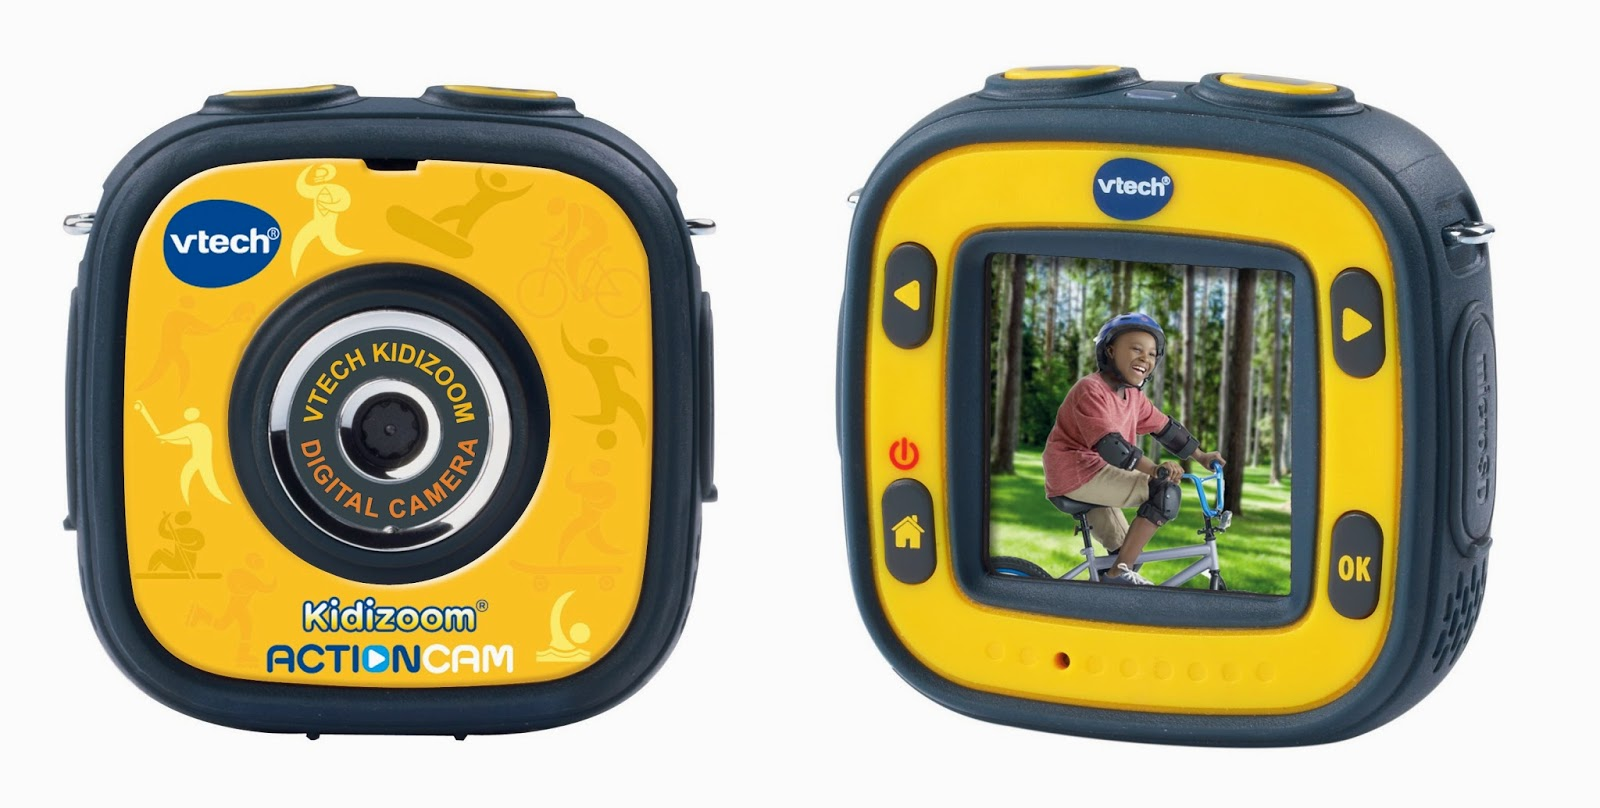 VTech Kidizoom Action Cam - yellow